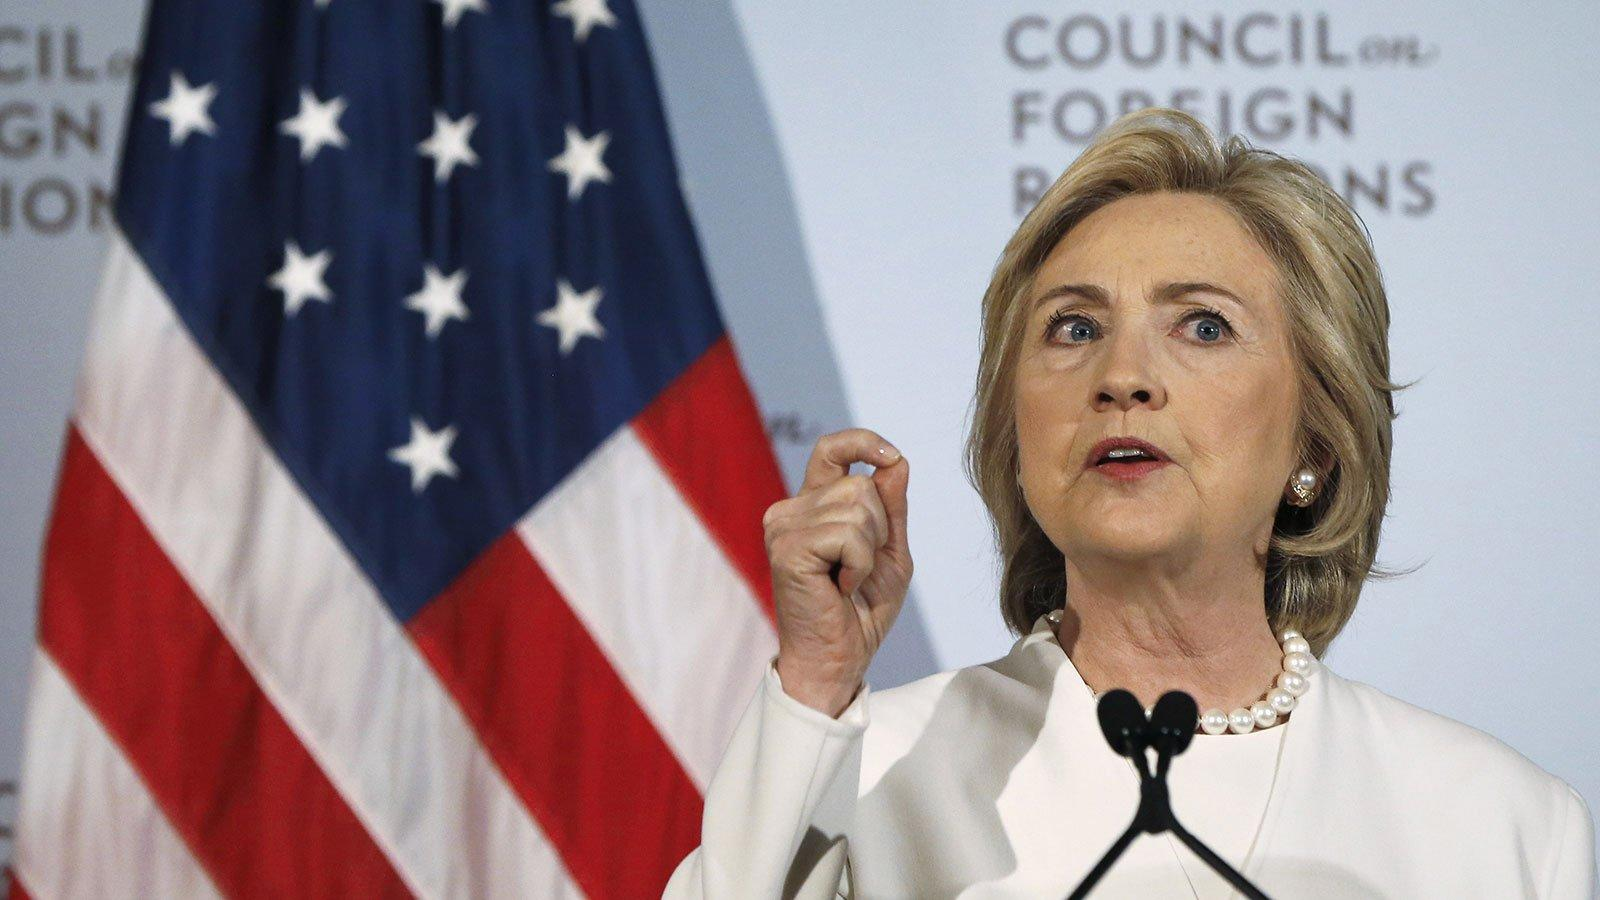 Clinton's Campaign Promises Total Nearly $1 Trillion – With More to Come